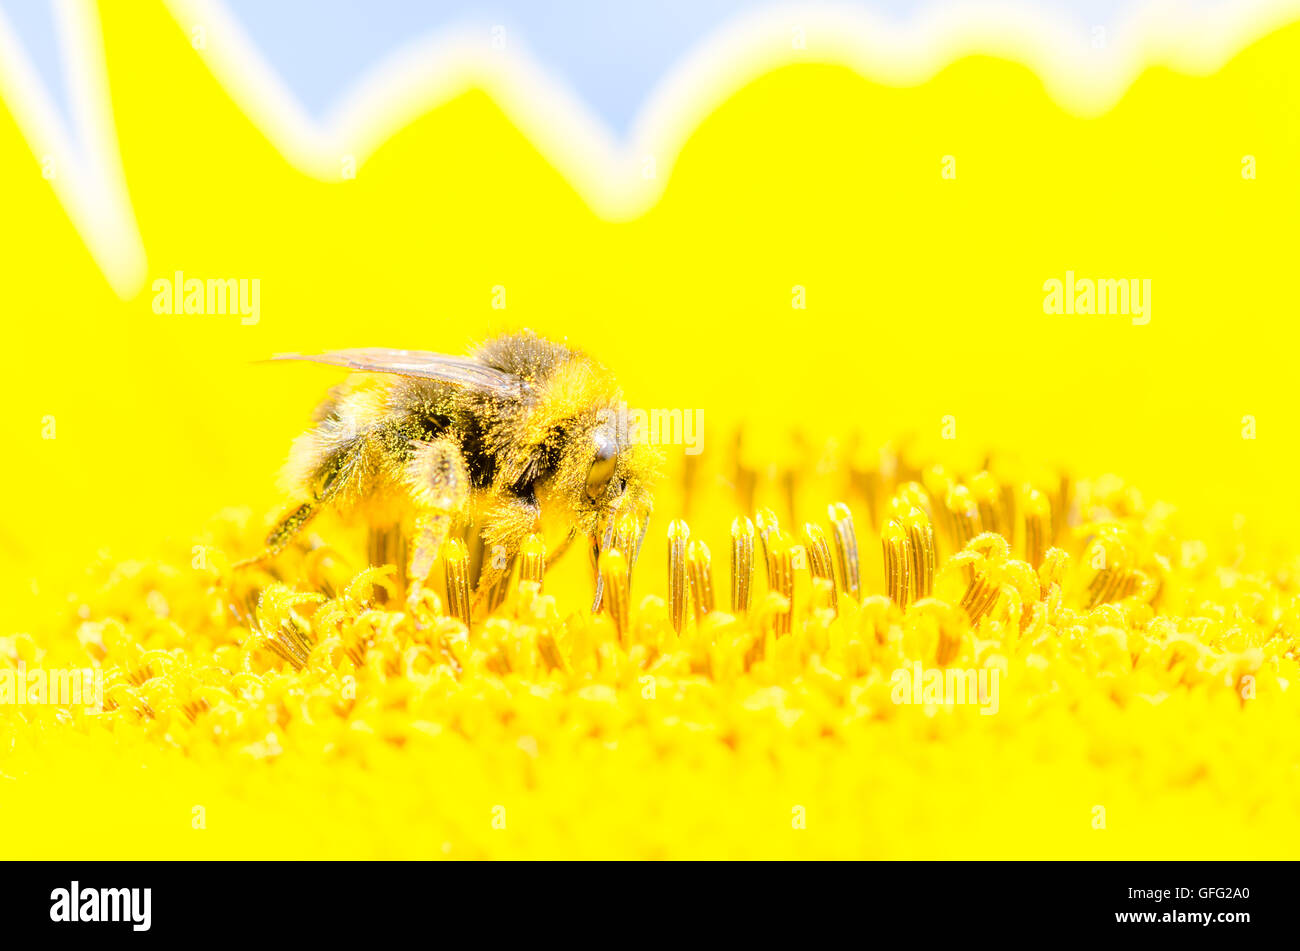 Bees on Sunflower plants - Stock Image